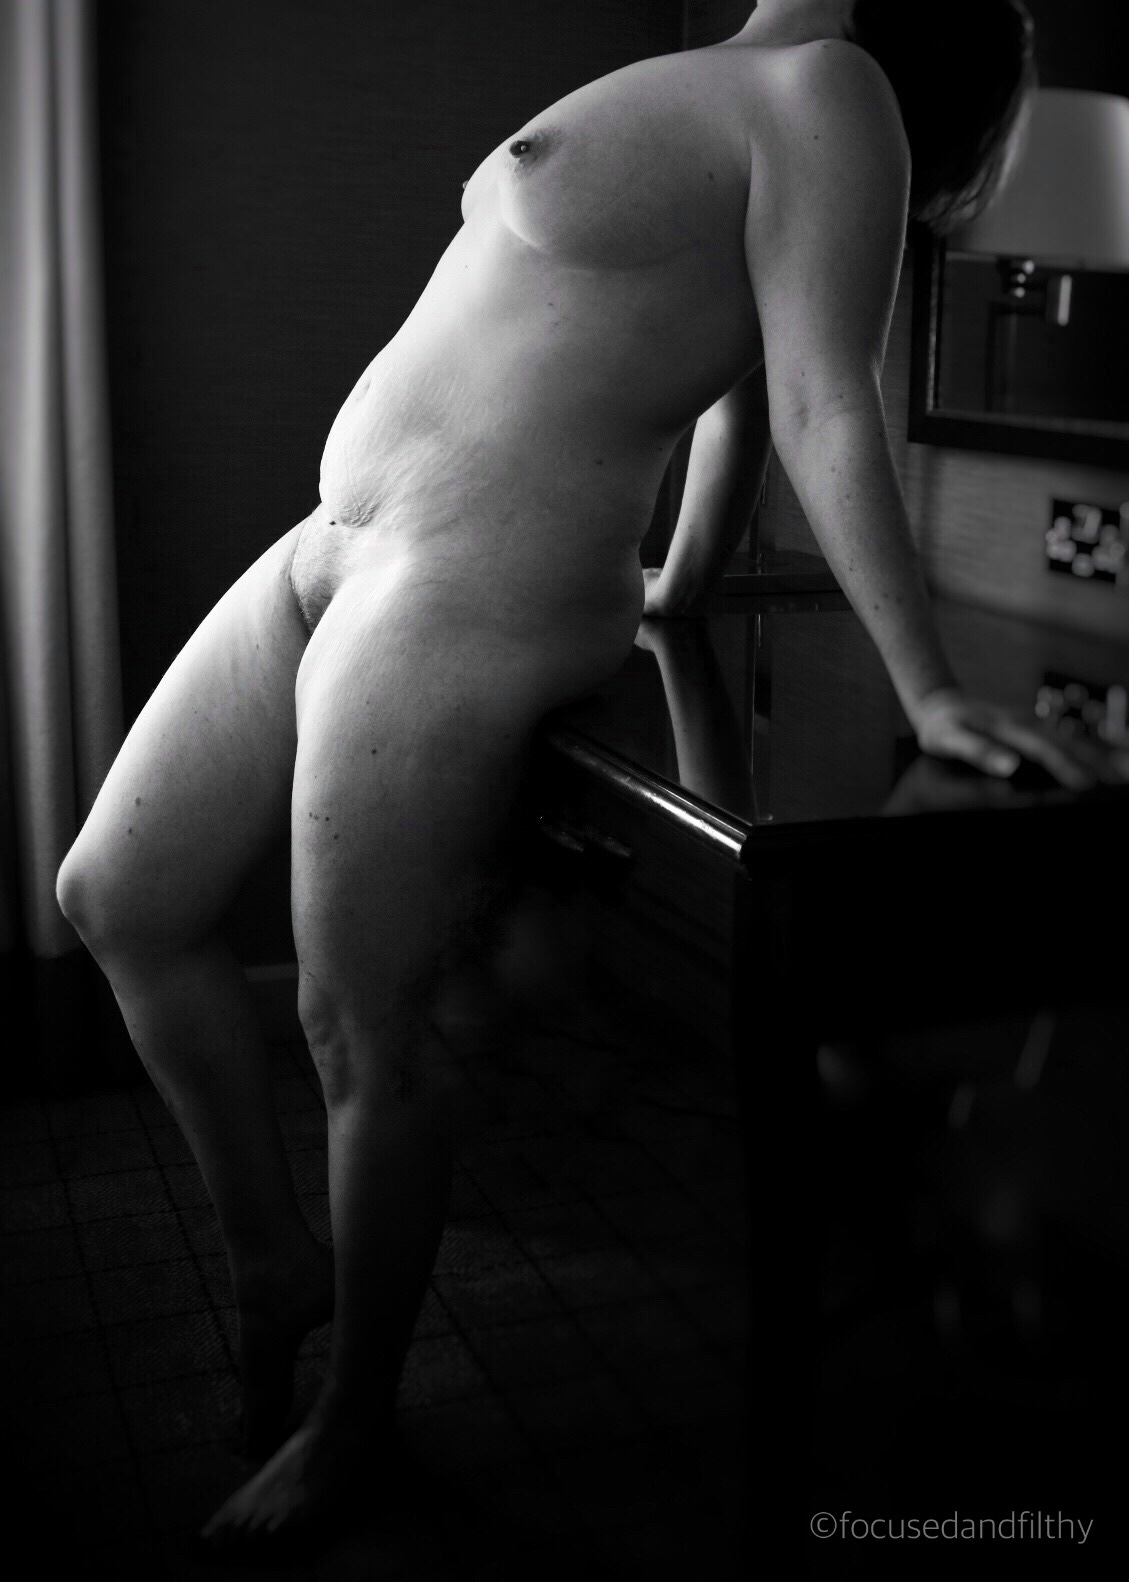 Black and white photograph of a naked woman stood up and leaning back against a wooden desk. Light across her front and dark behind her